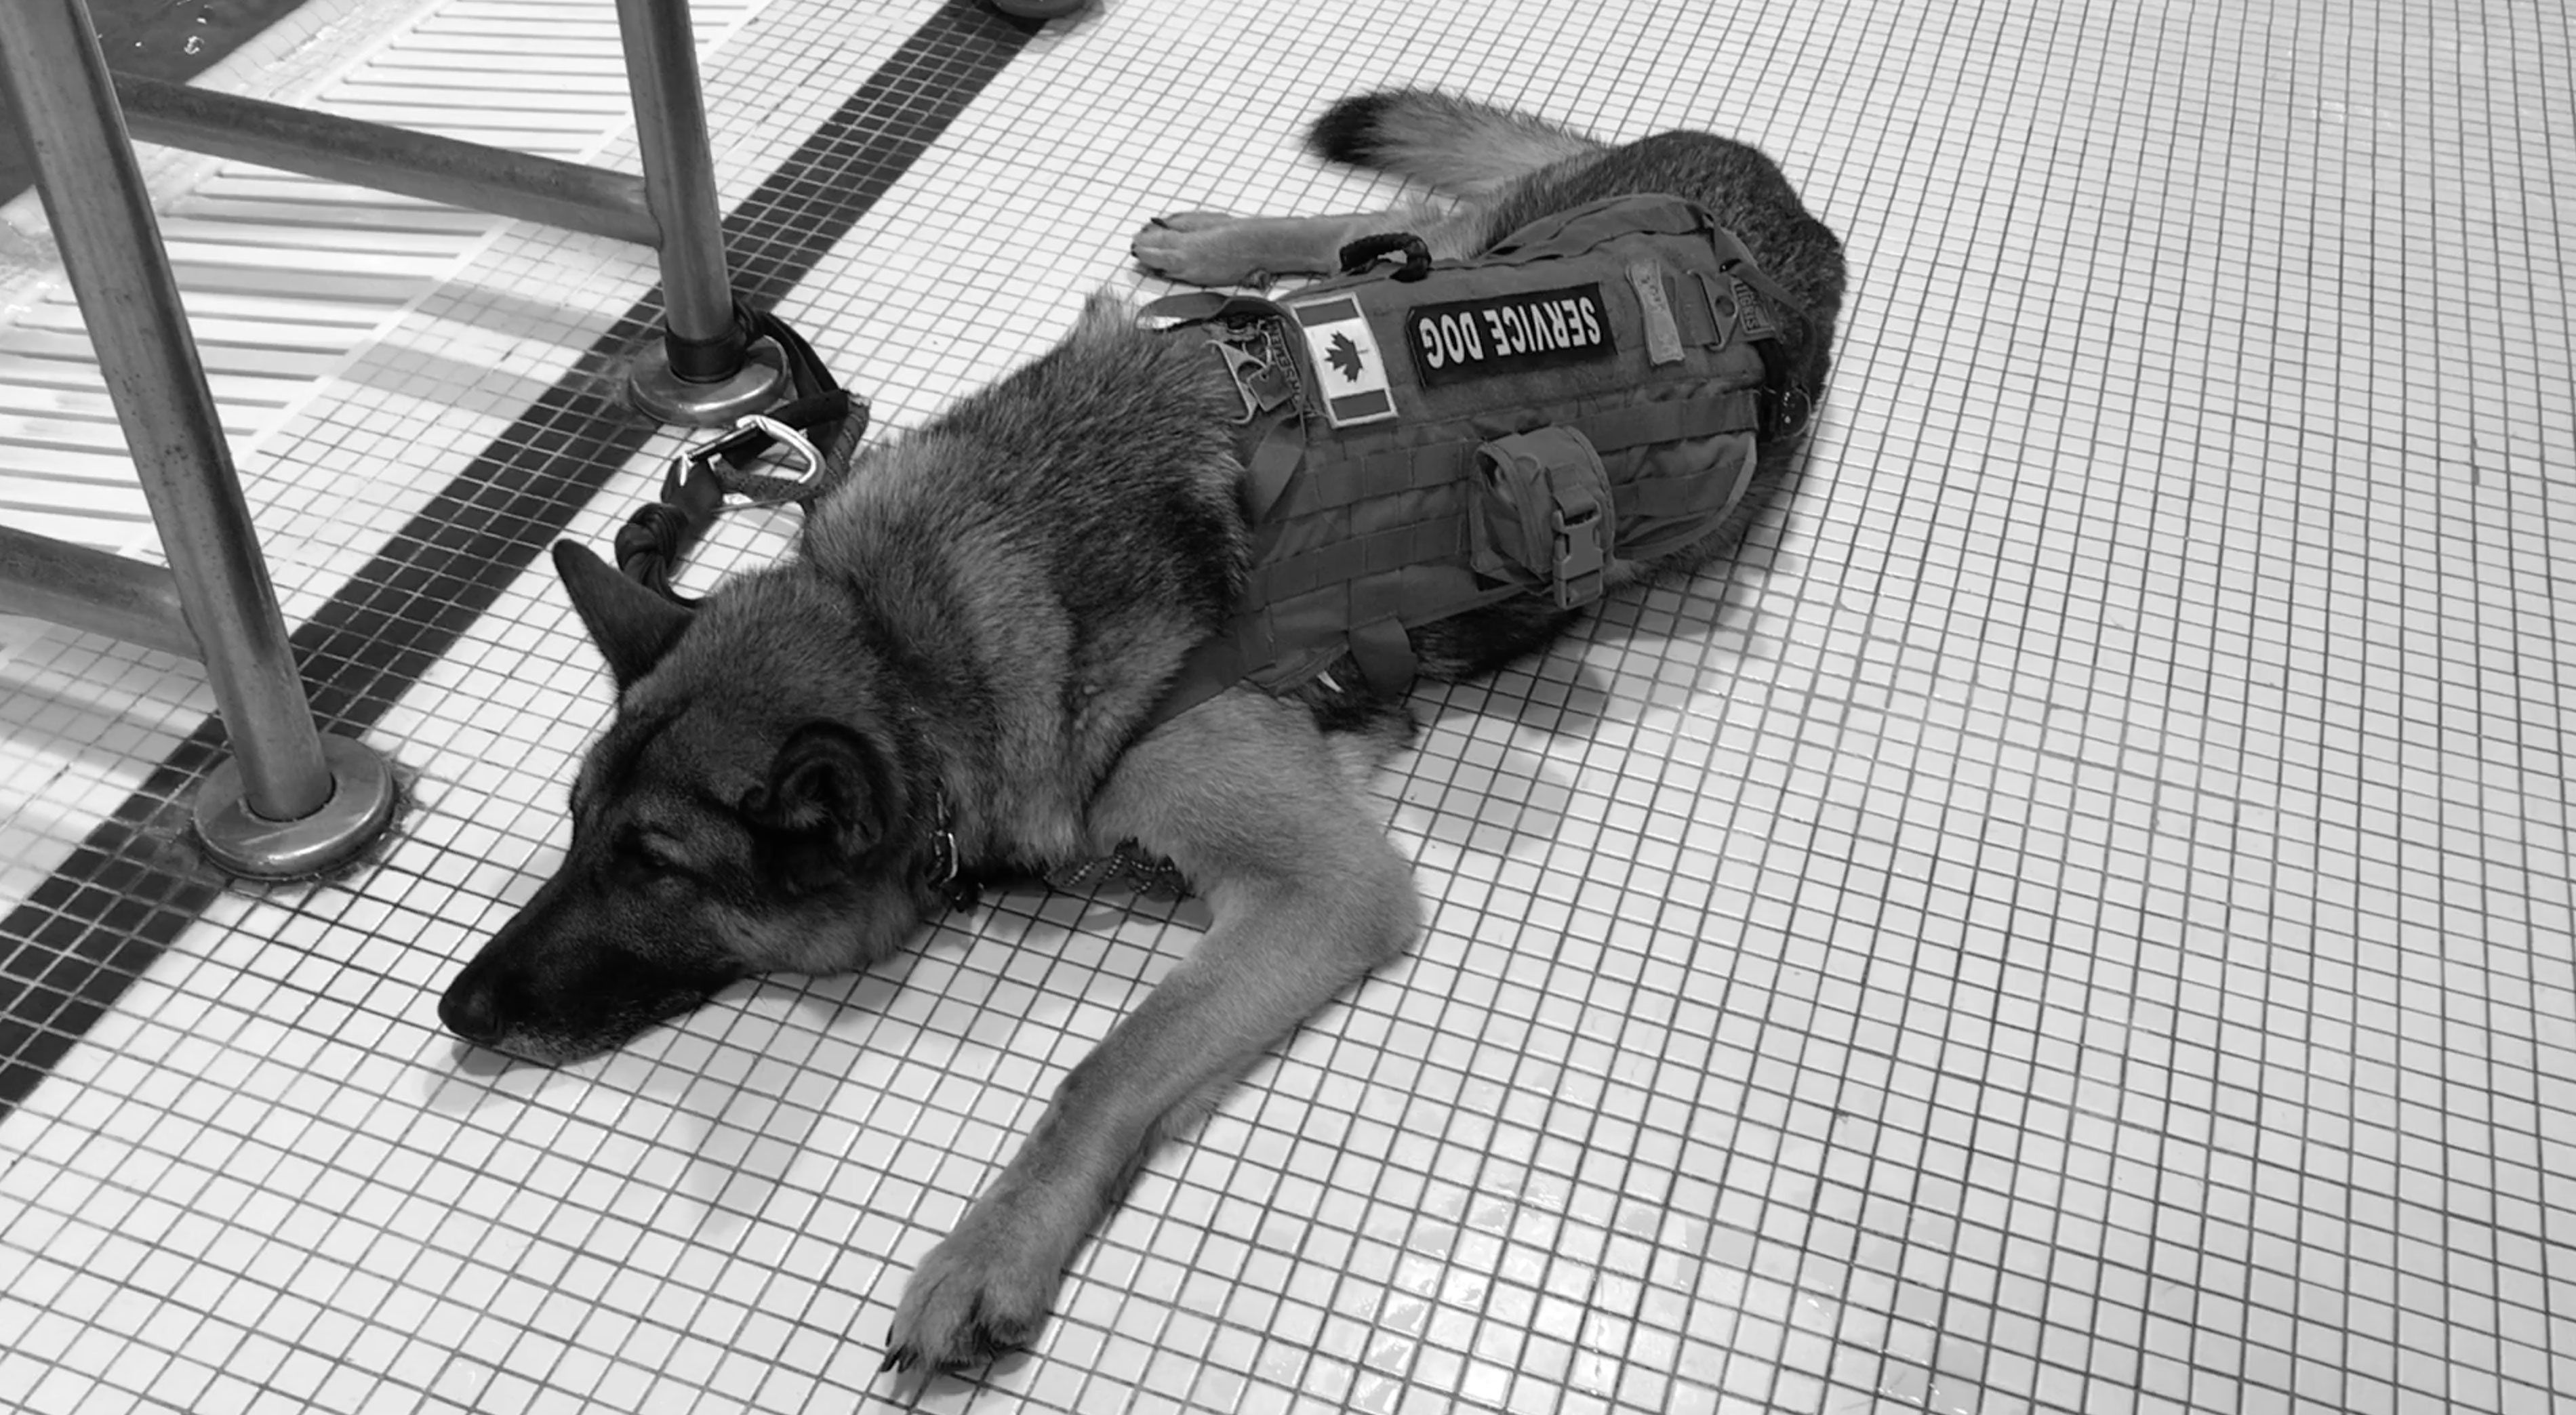 Standards for service dogs are overdue